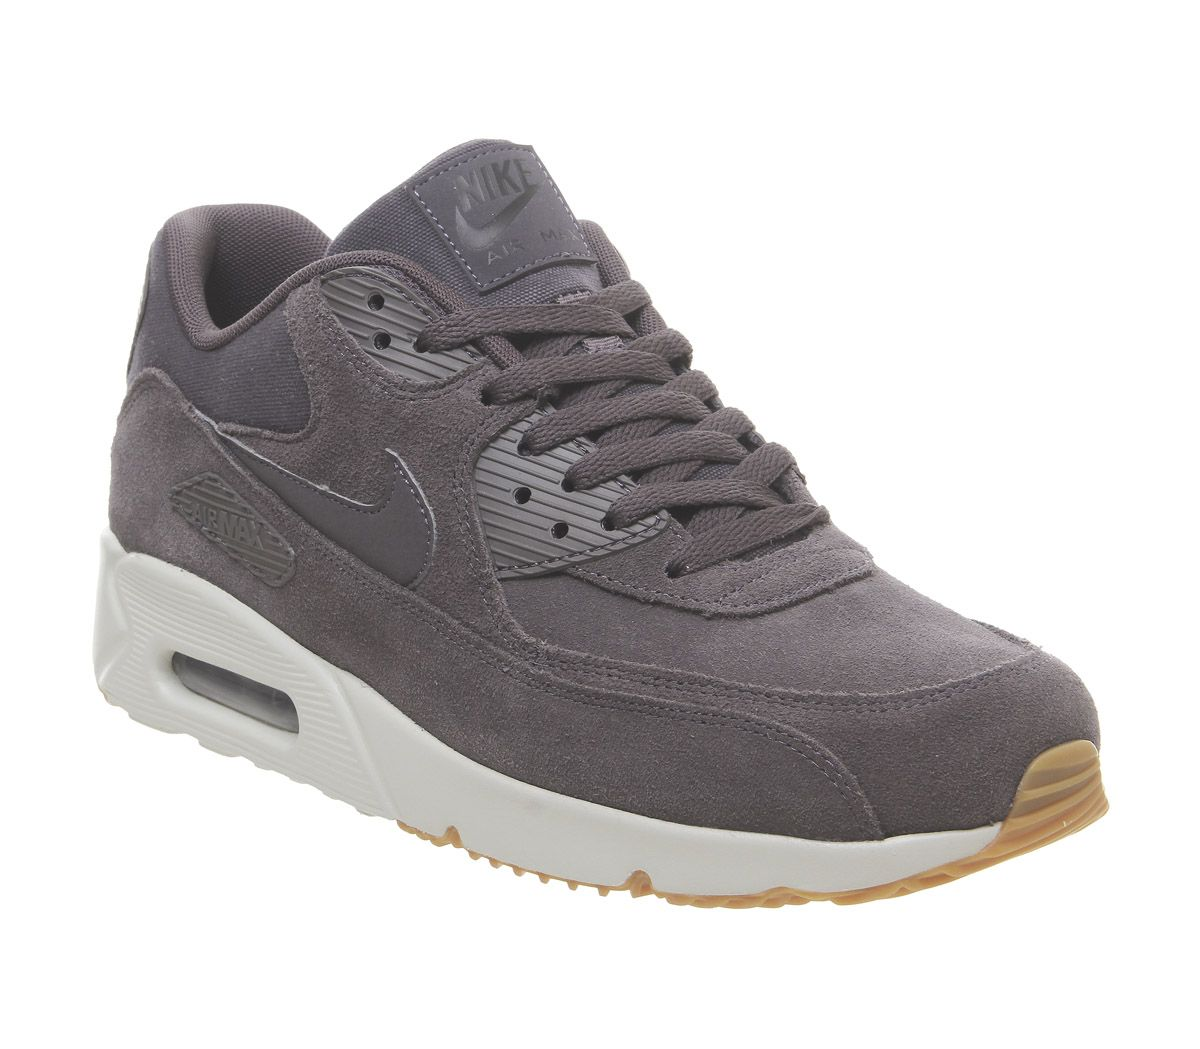 8959916f84 Nike Air Max 90 Ultra 2.0 Trainers Thunder Grey Light Bone Gum - His ...